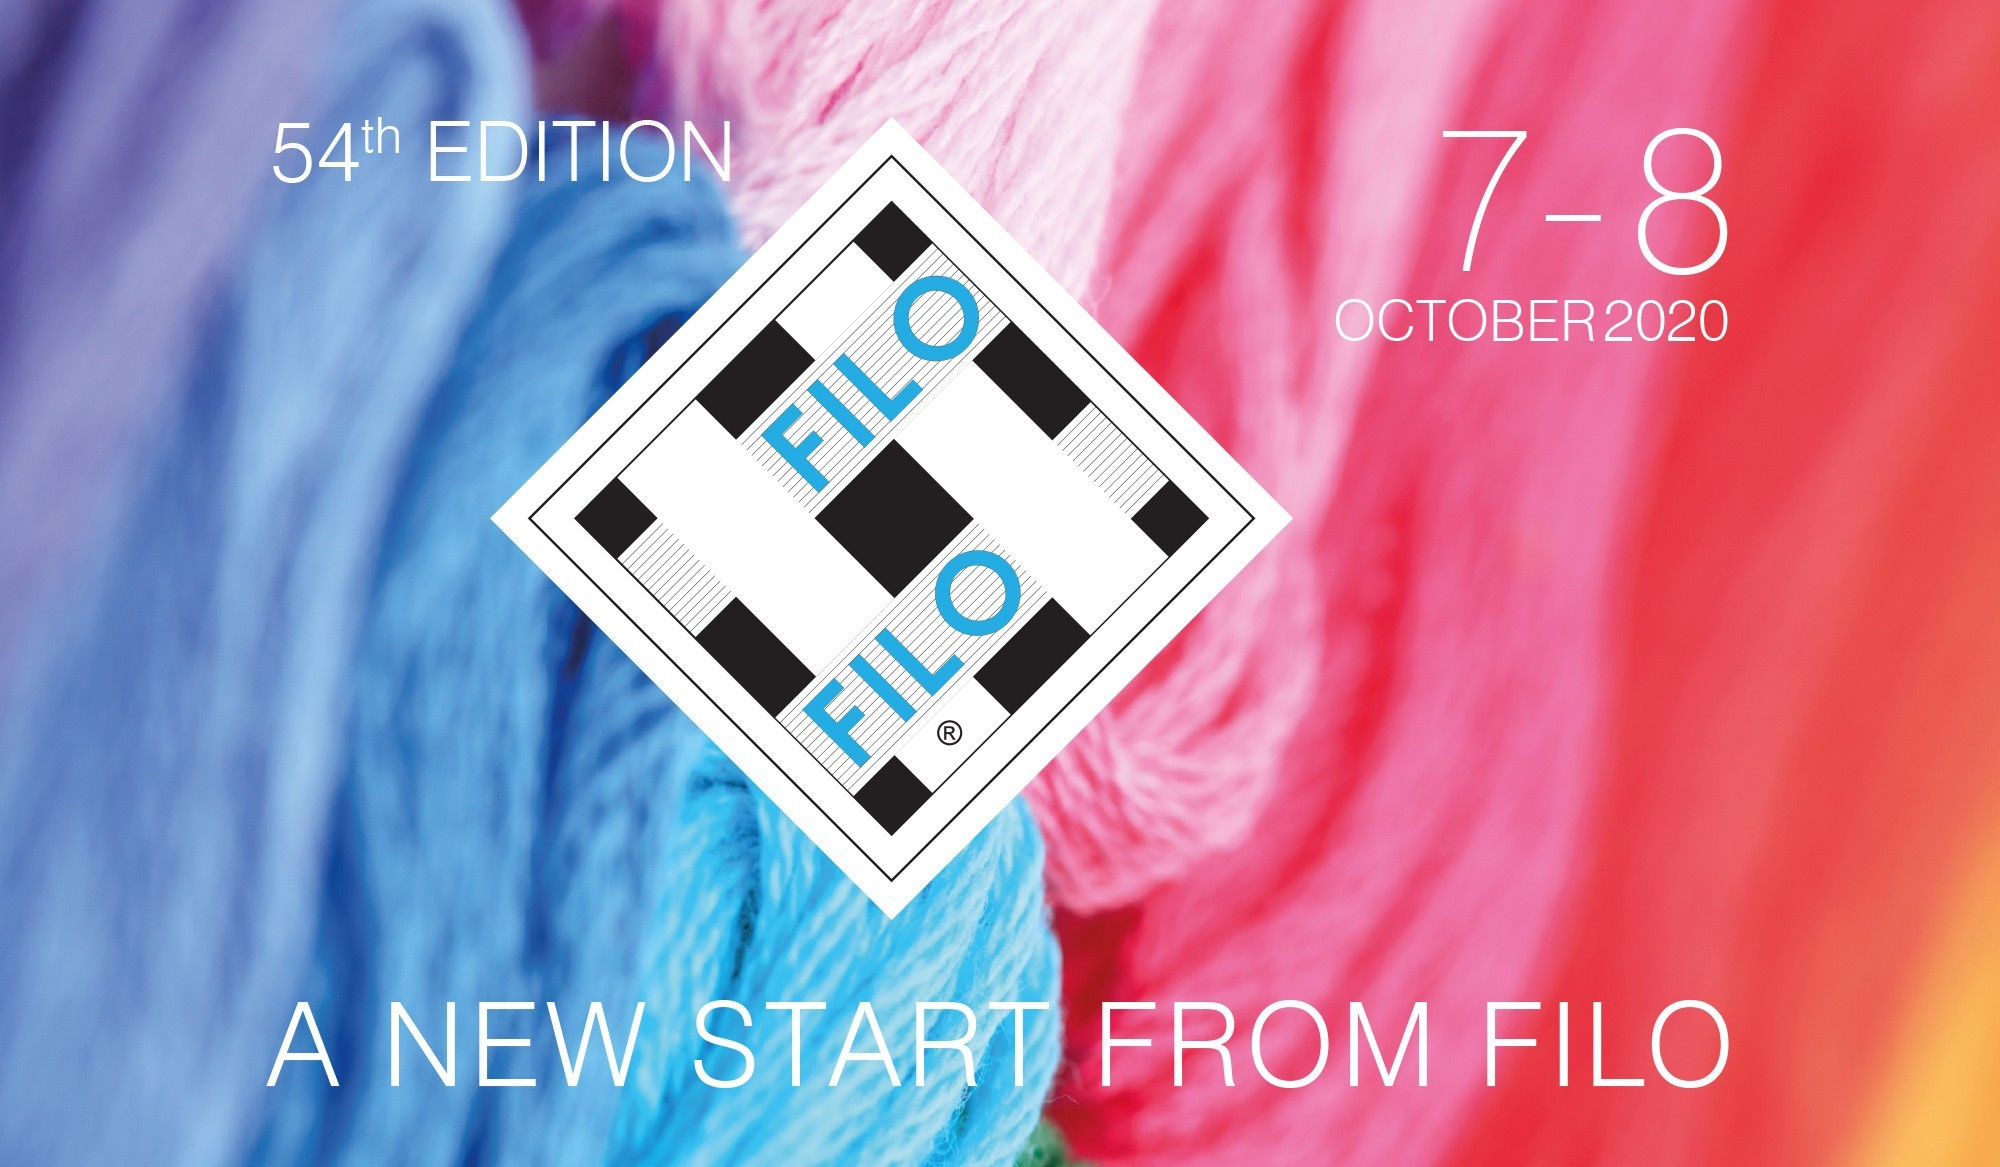 Yarns Industry: A New Start From Filo